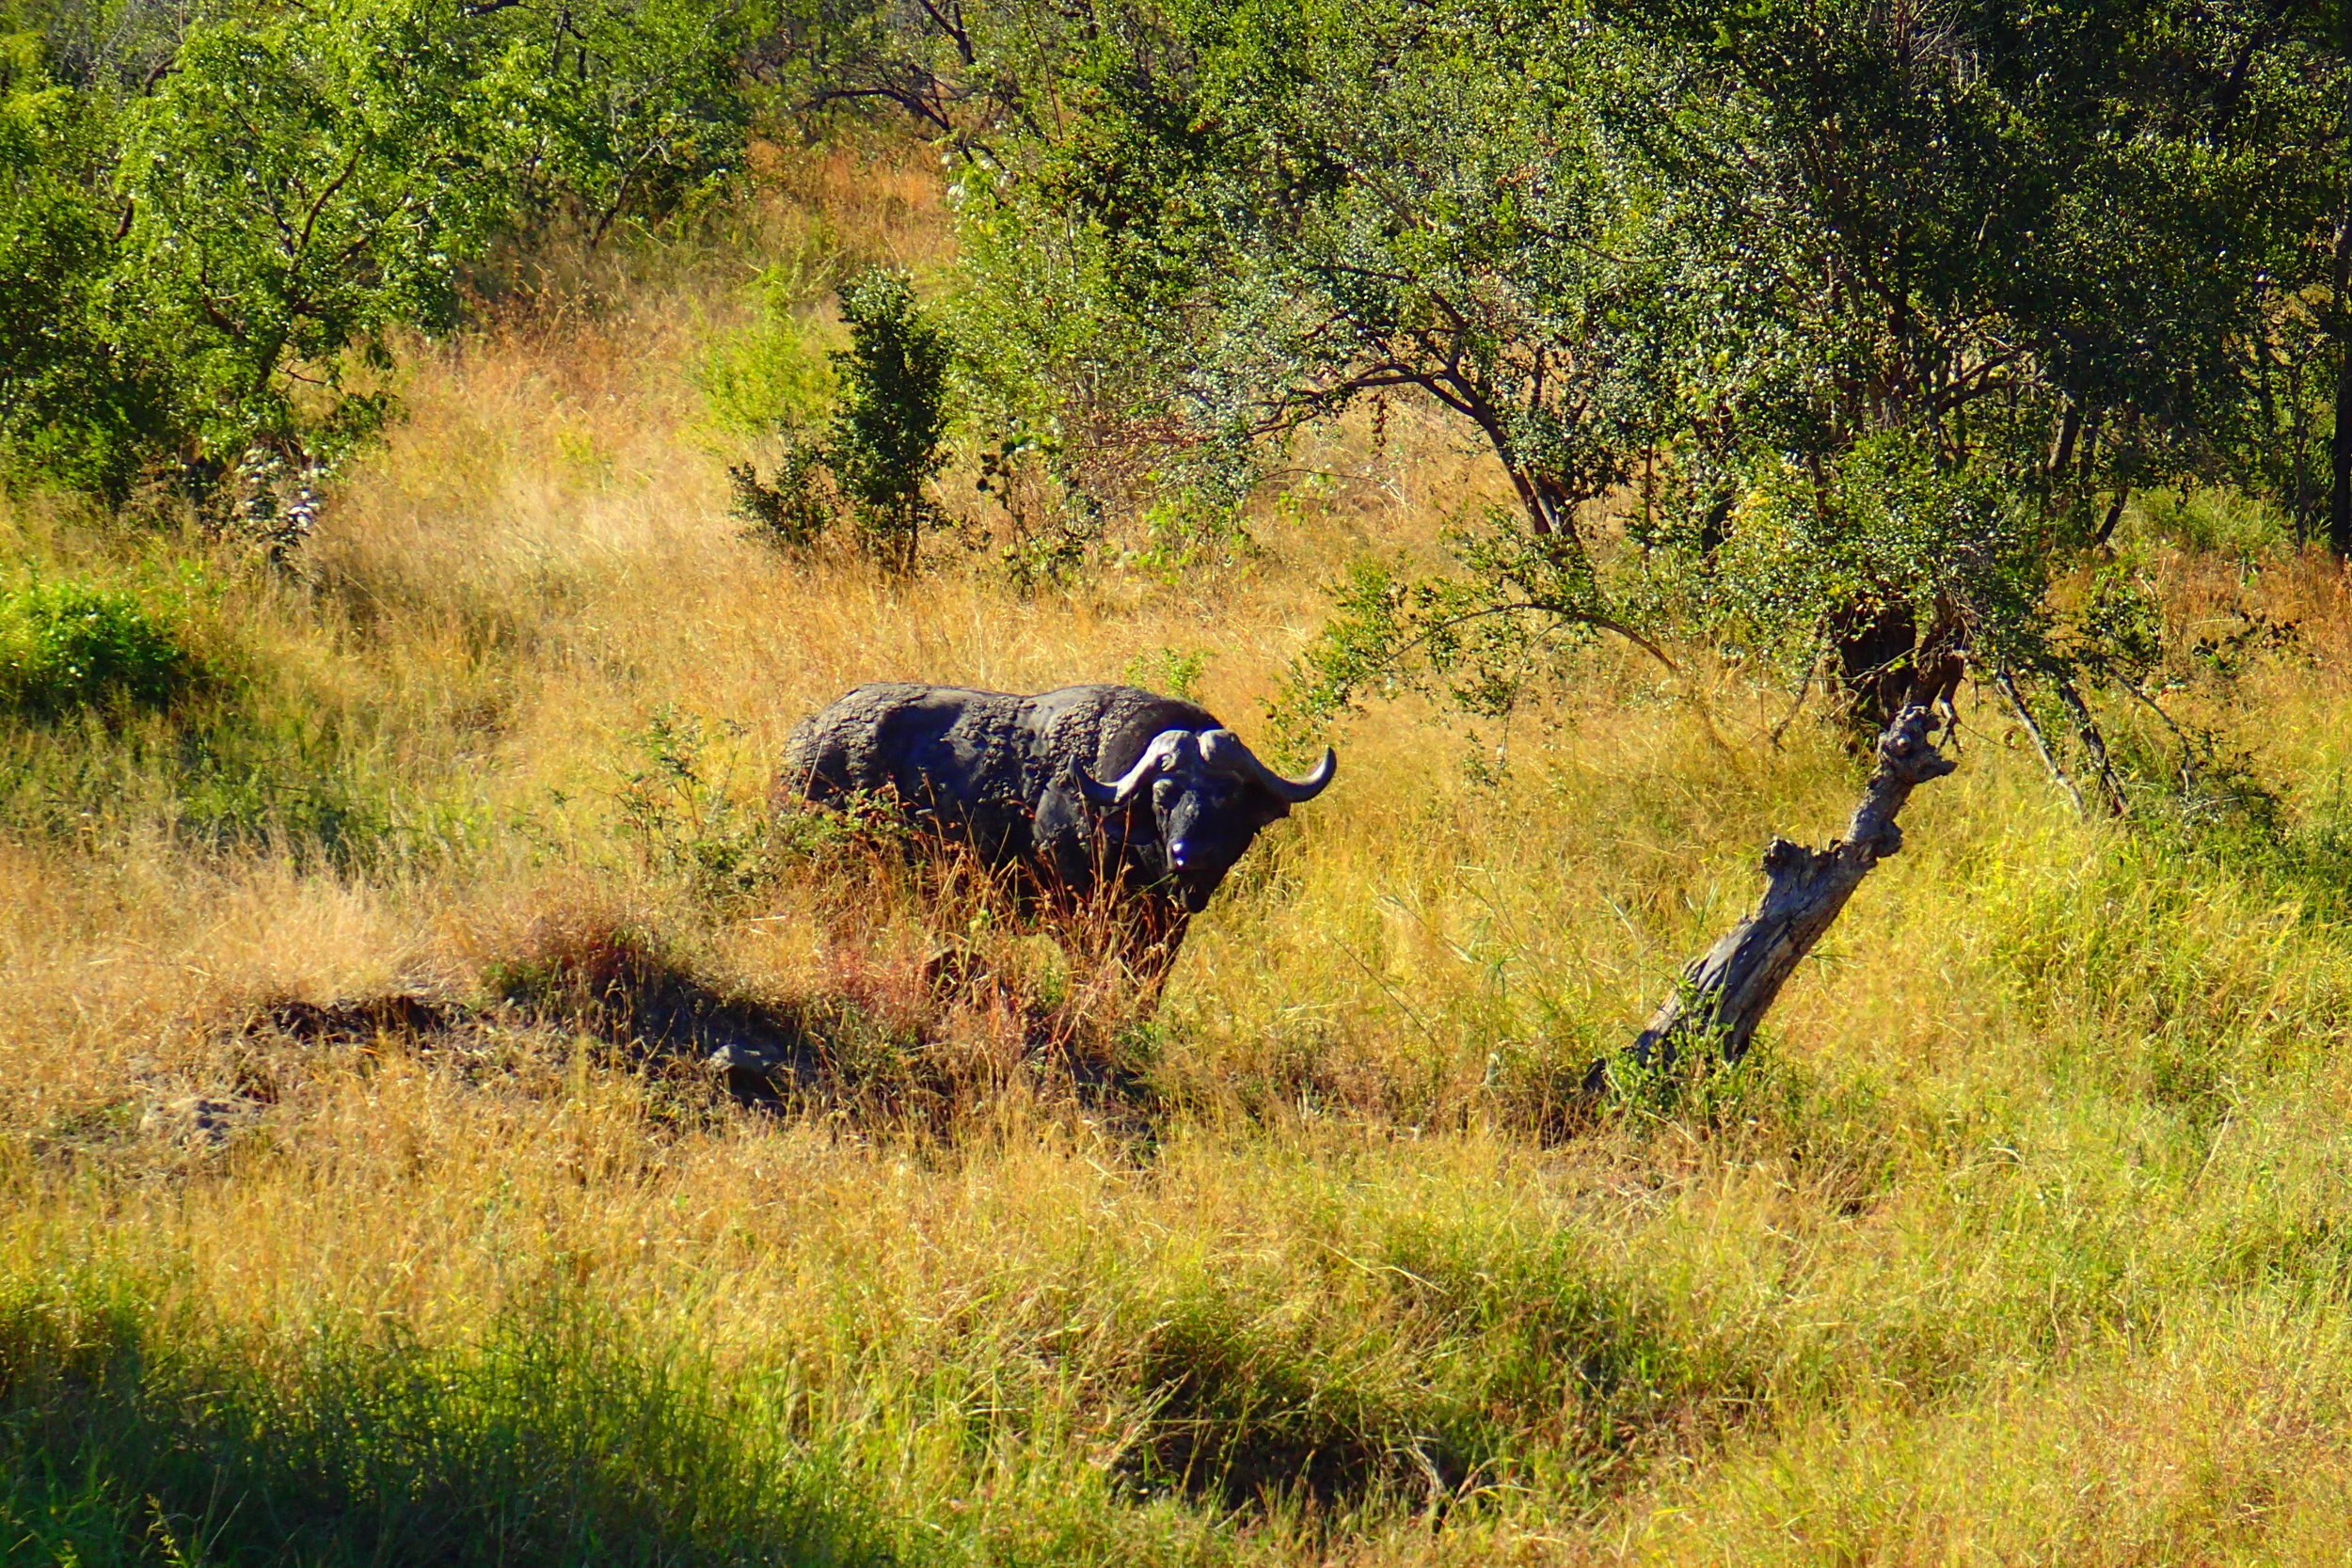 The African Cape Buffalo